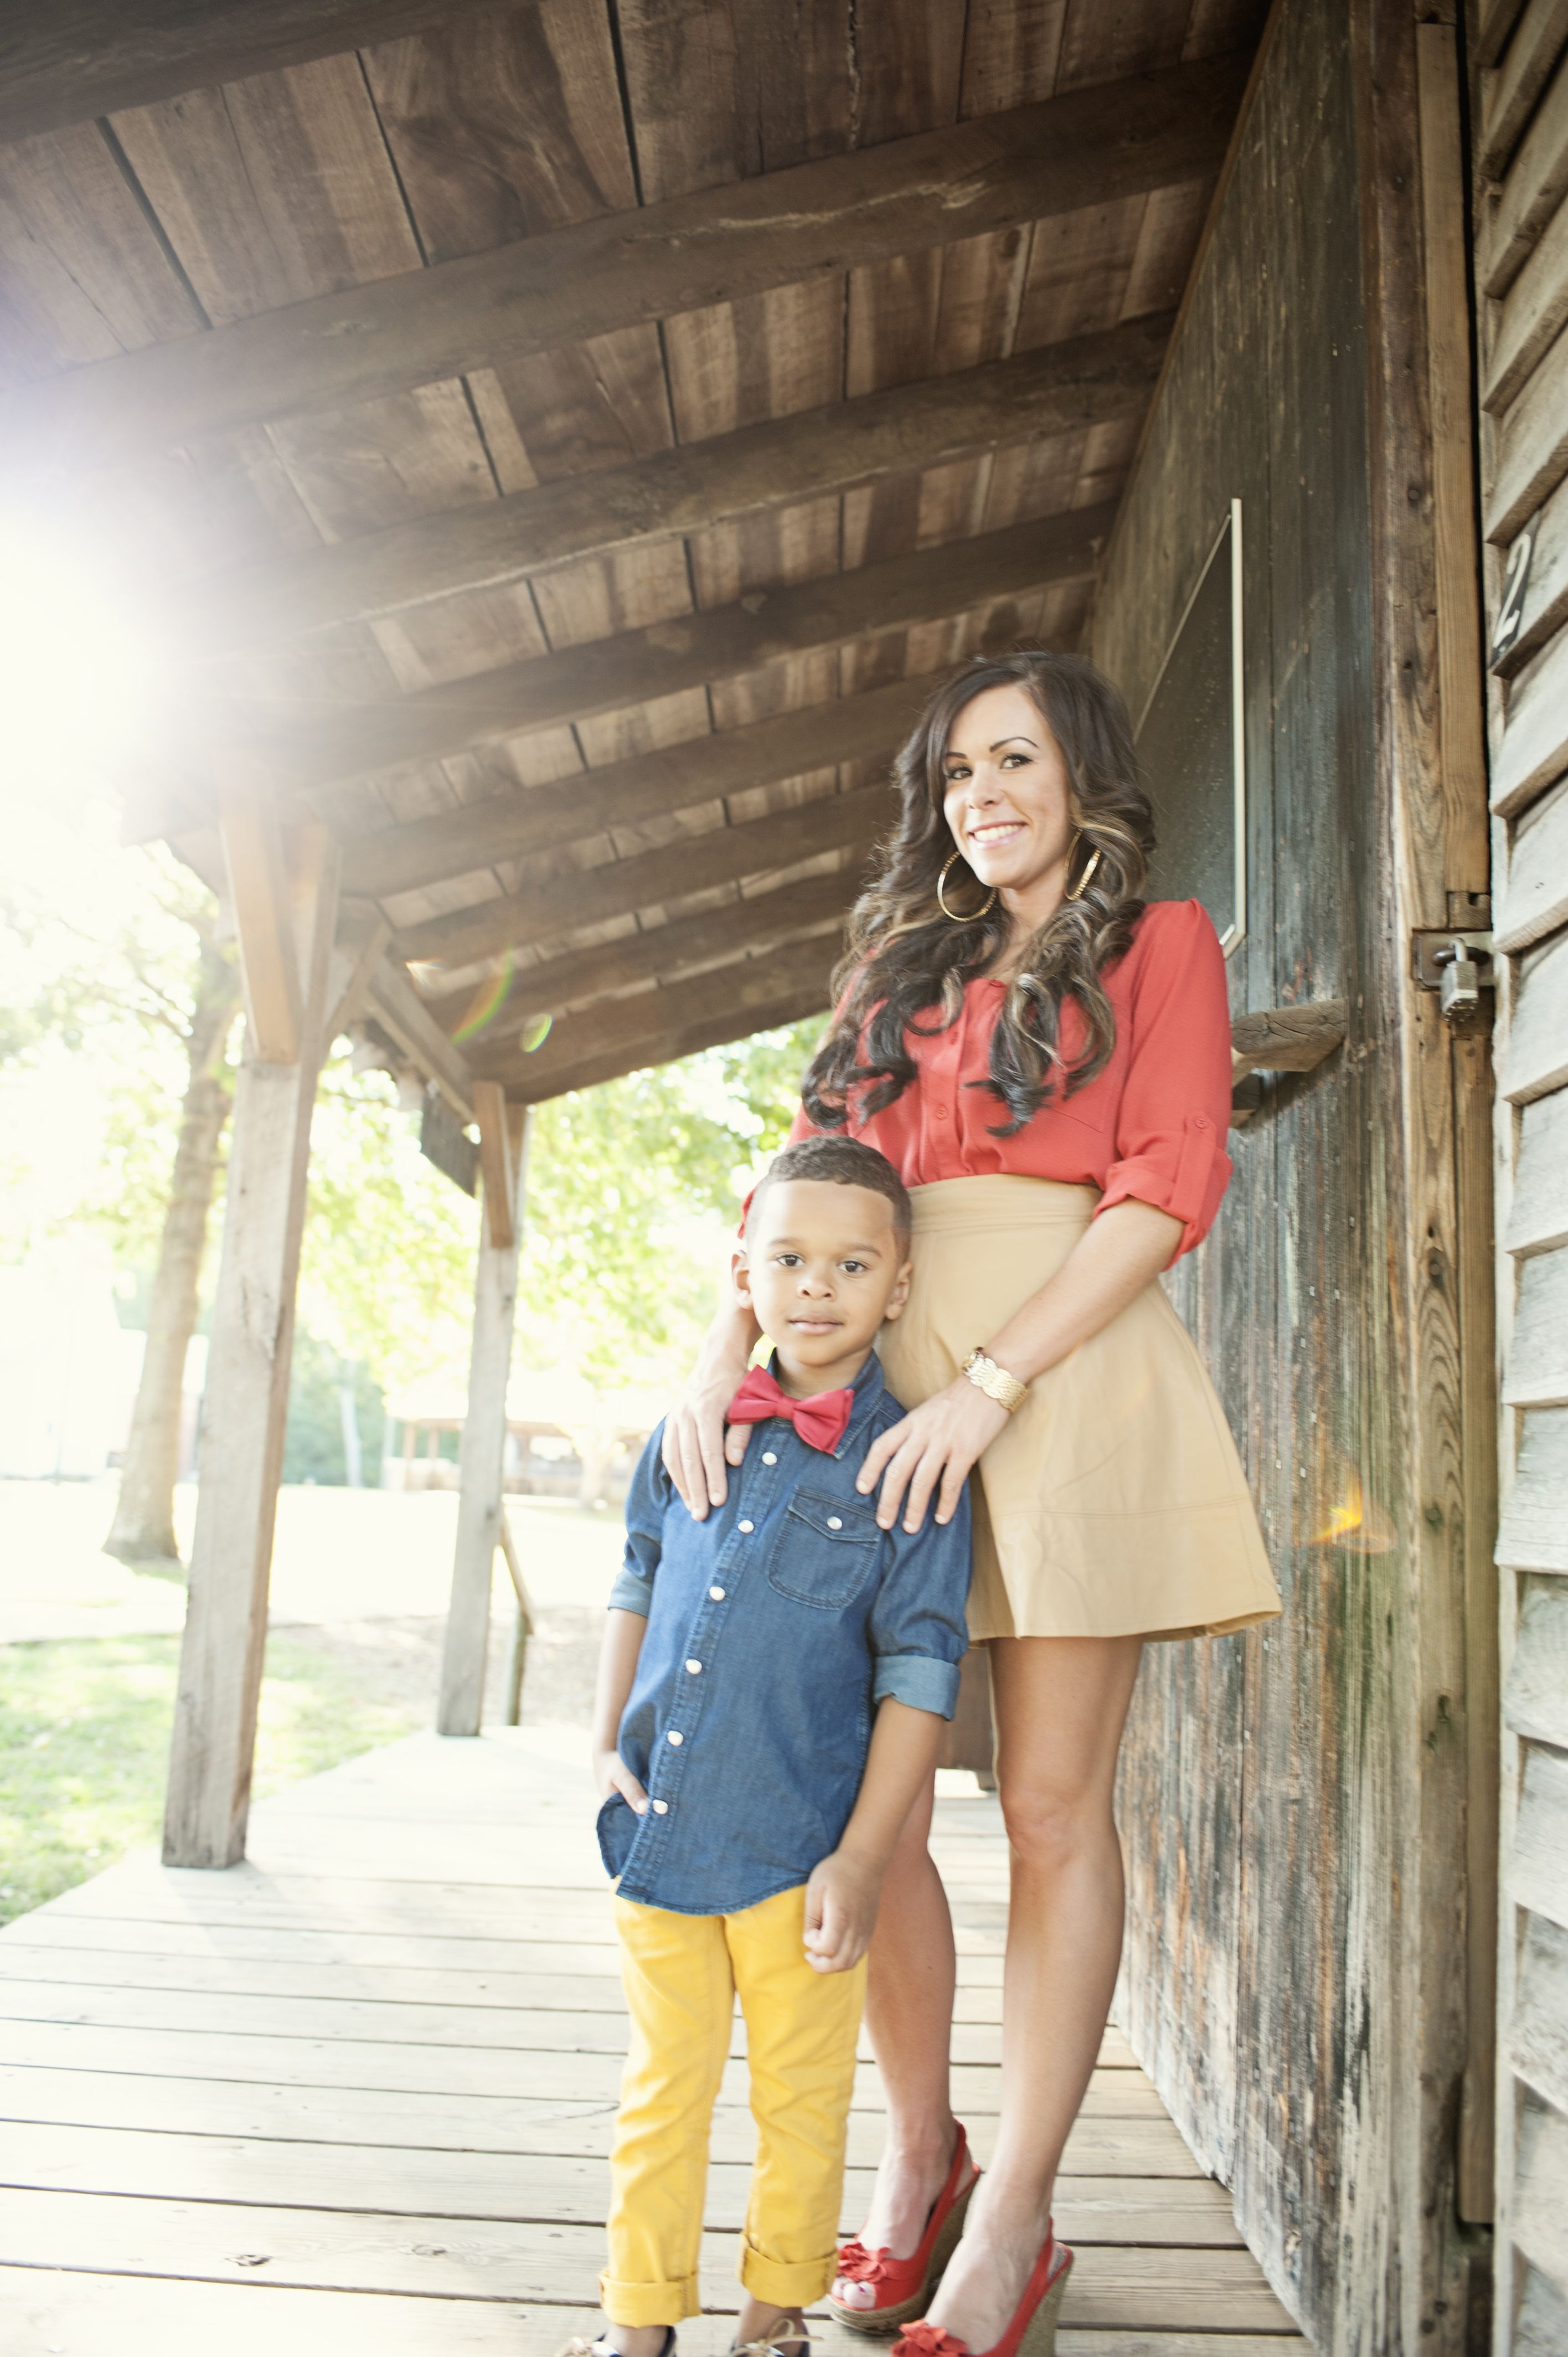 #mother #son #photography #love | Mother son photography